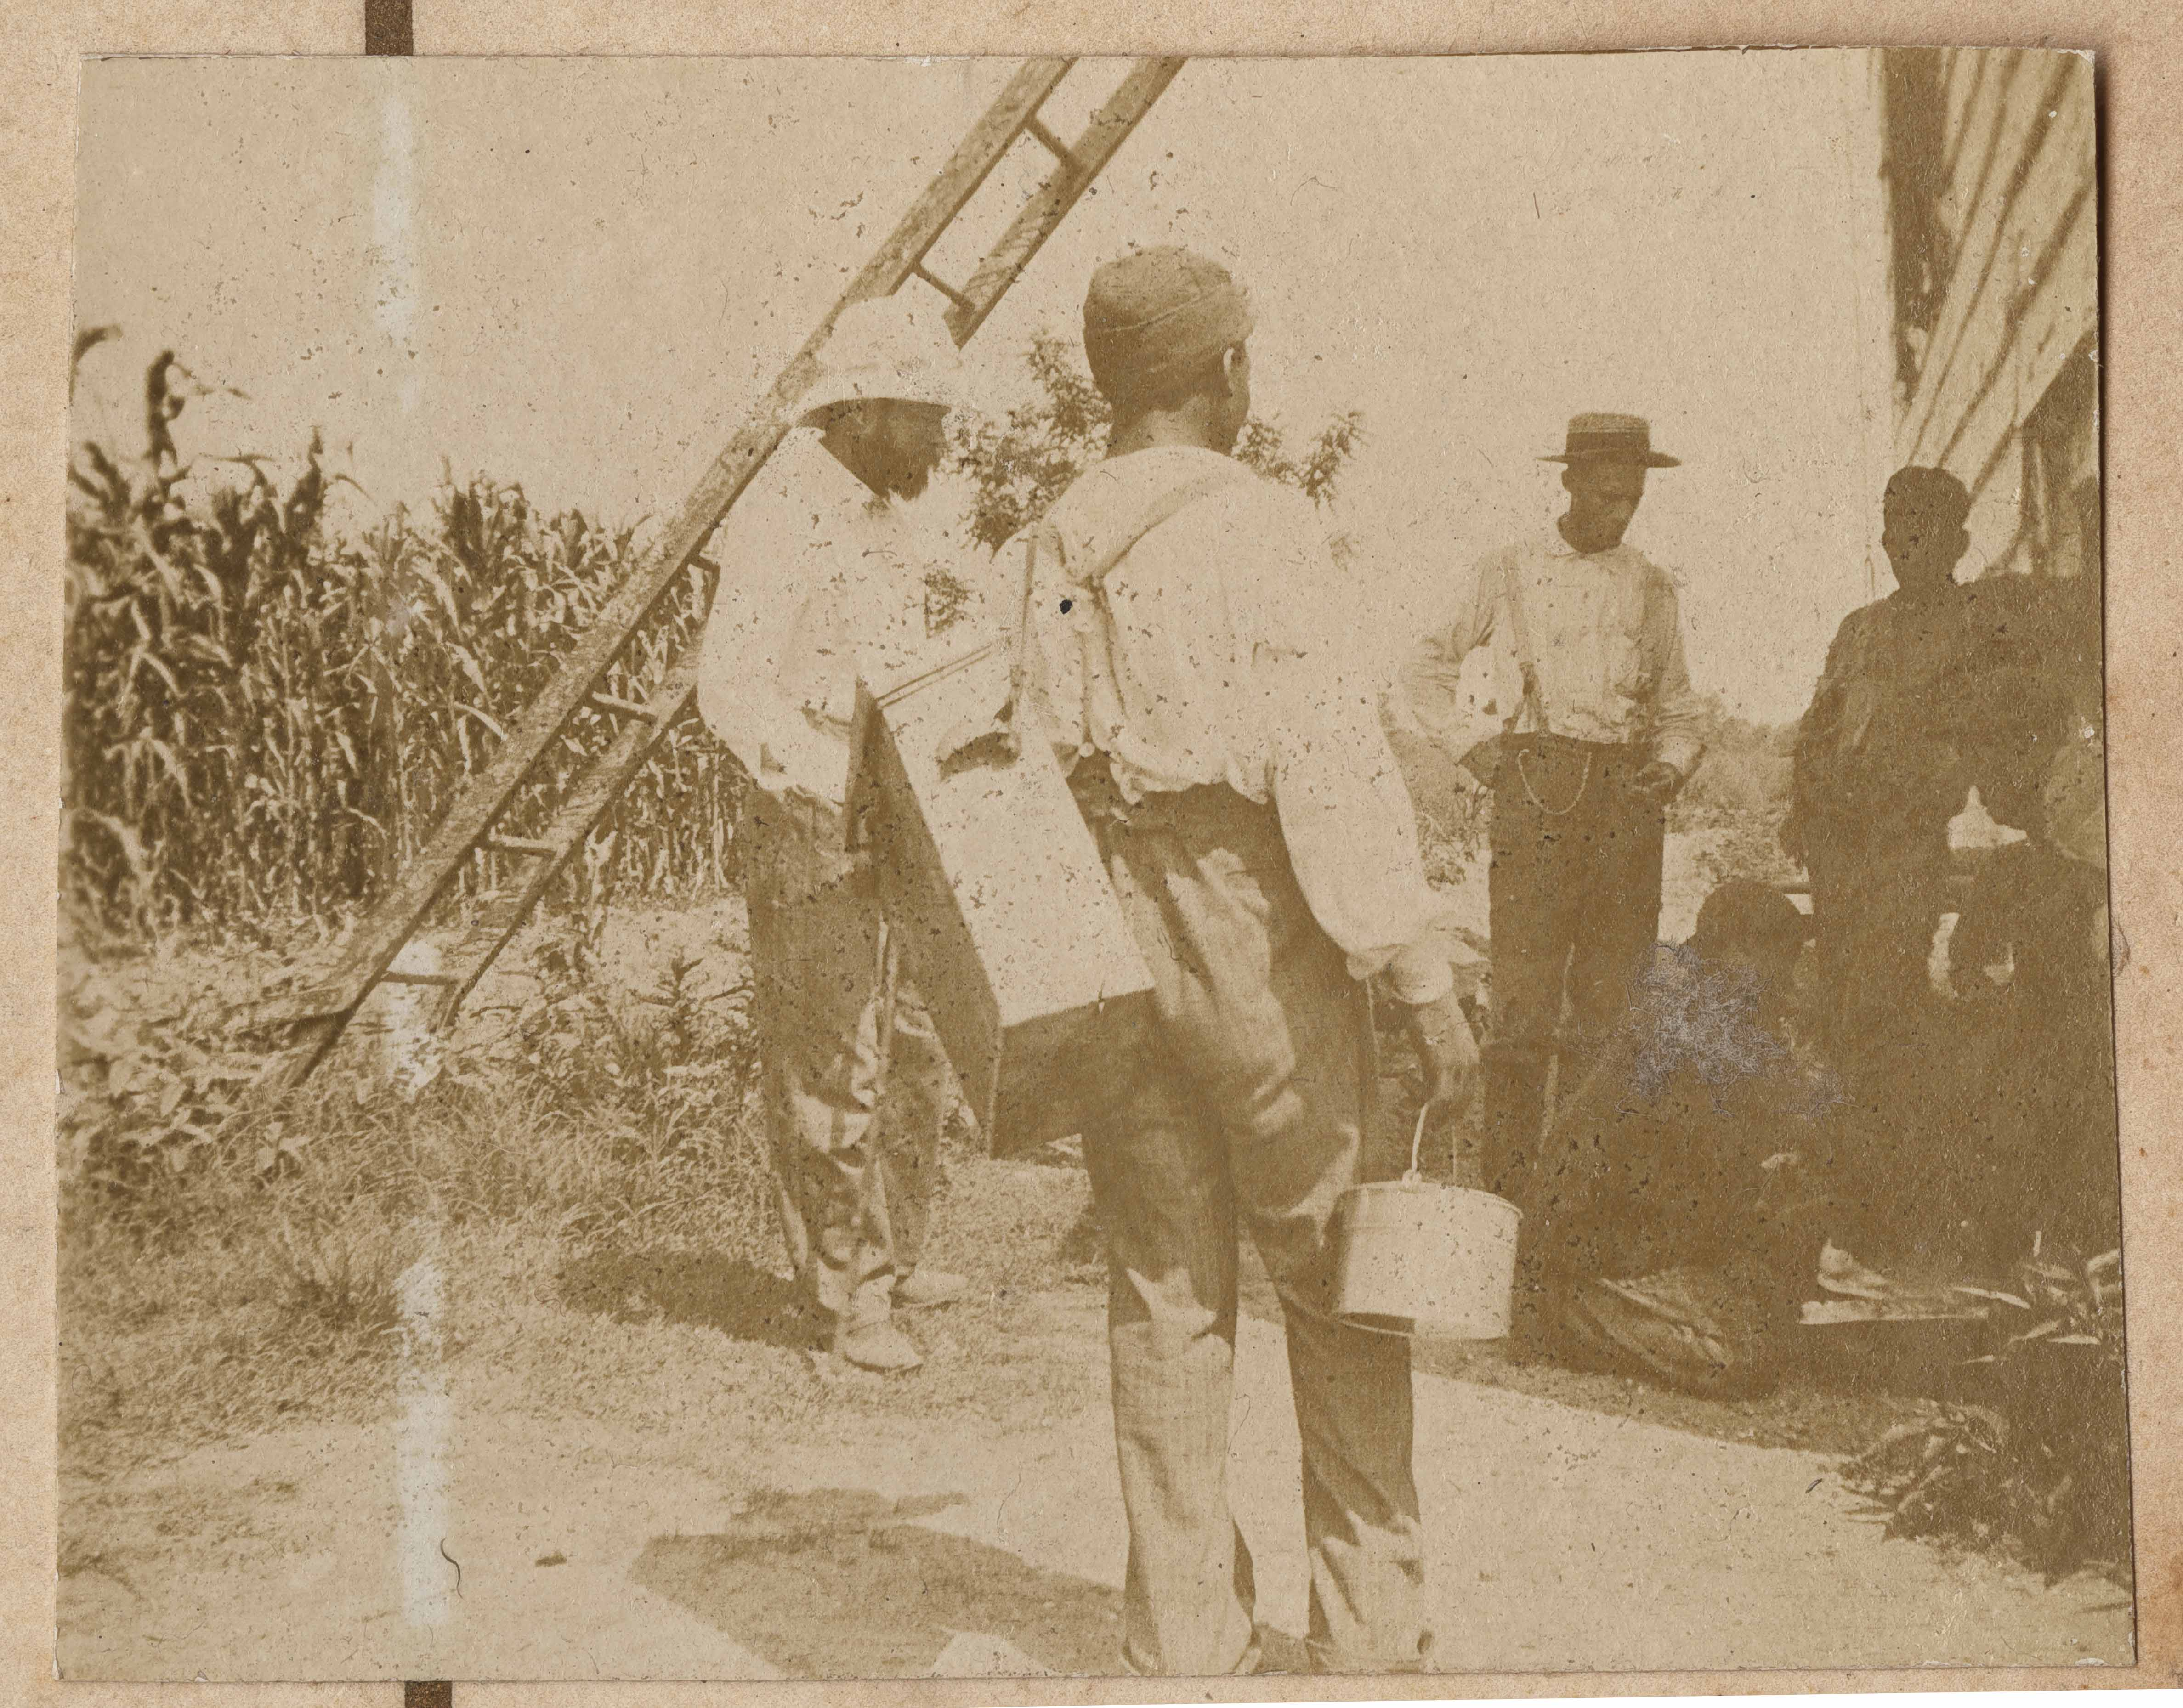 Conrad Donner with group of workers near corn field and barn